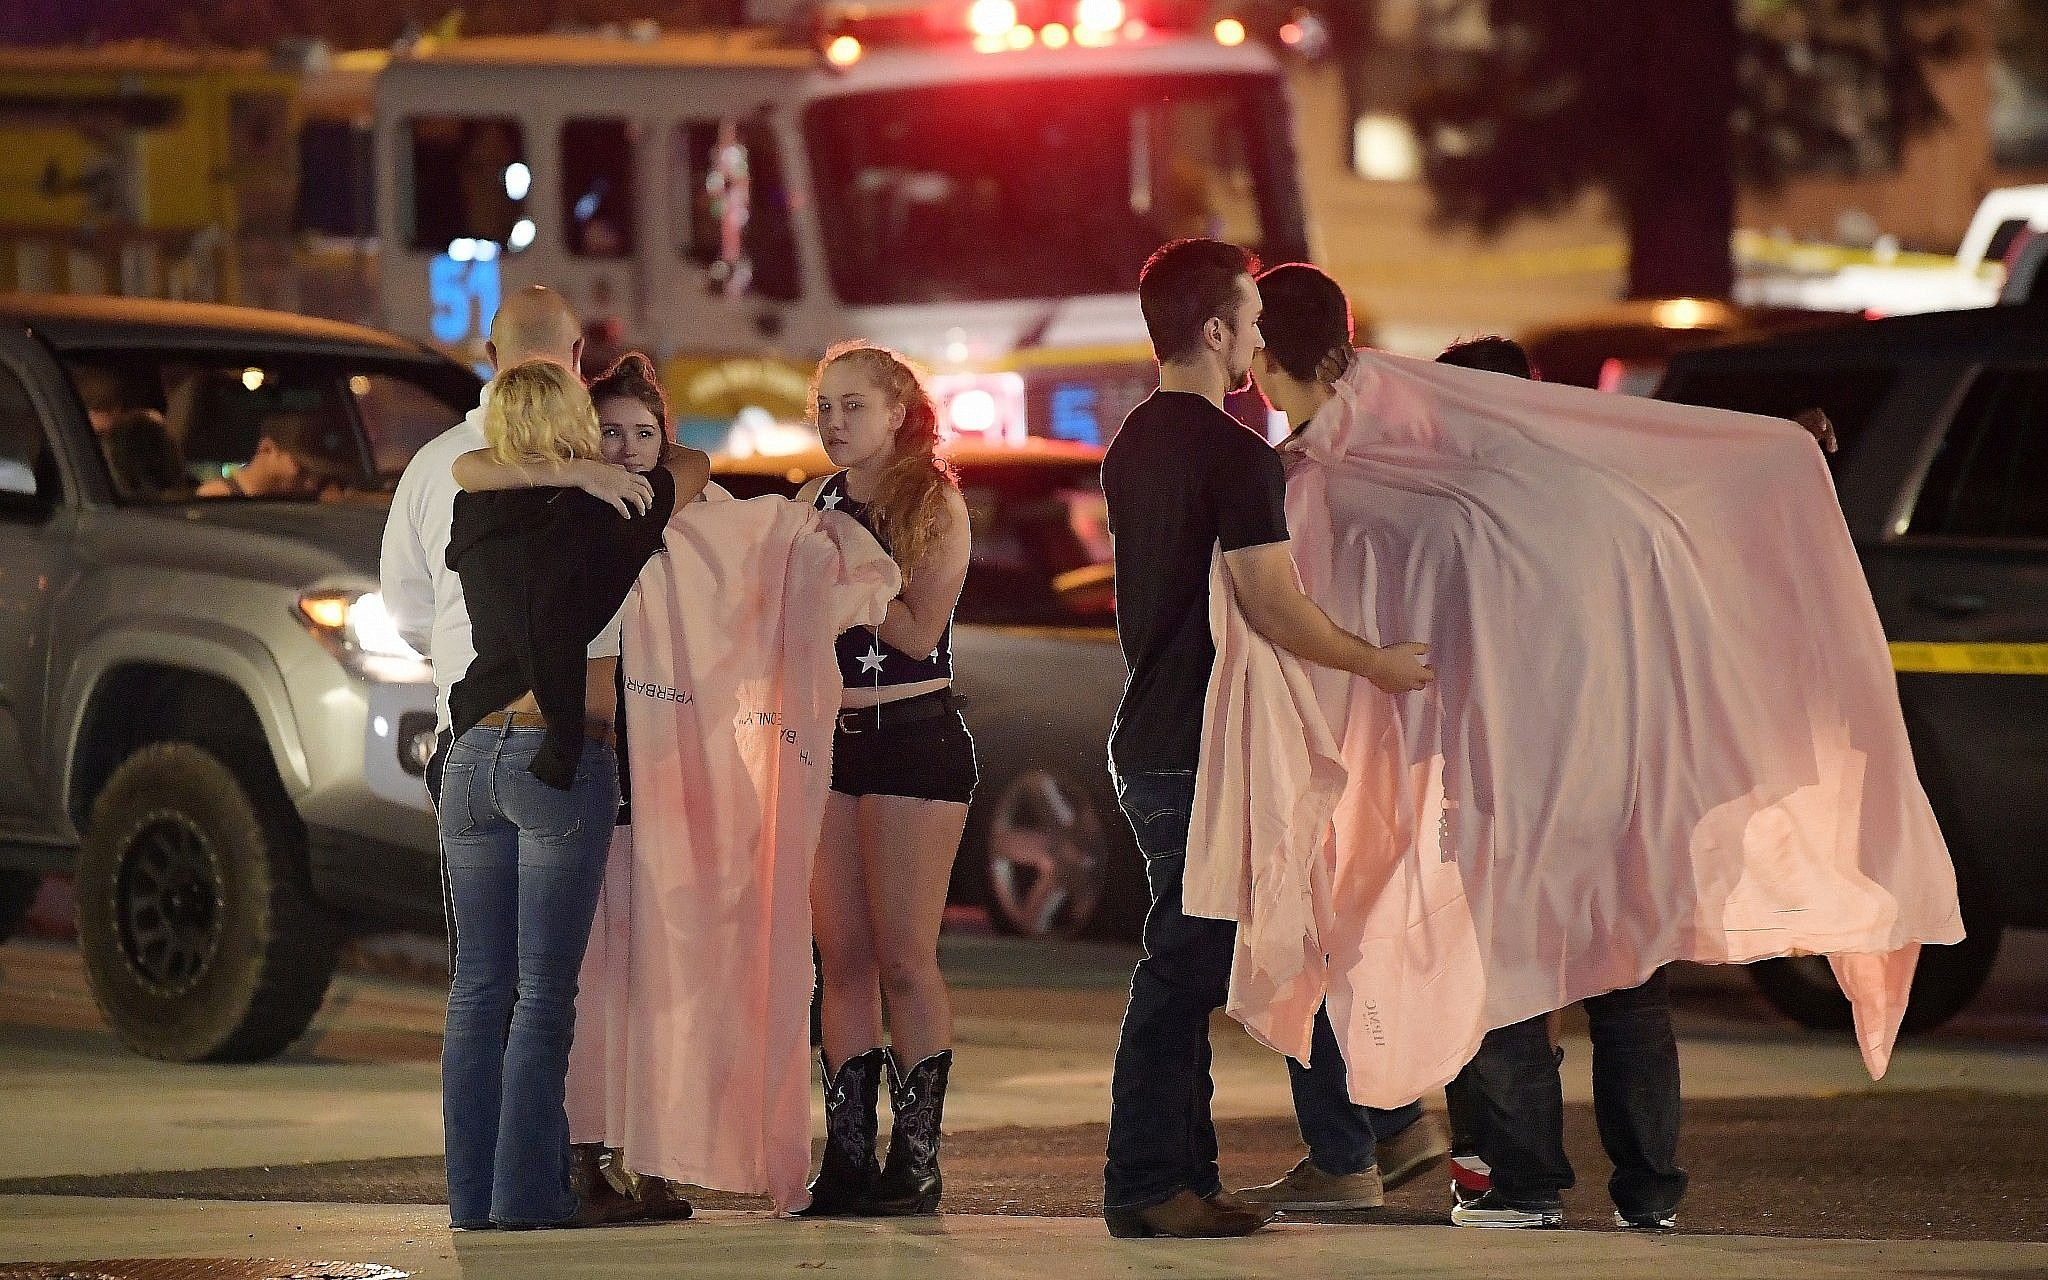 Gunman kills 12 in California bar packed with students